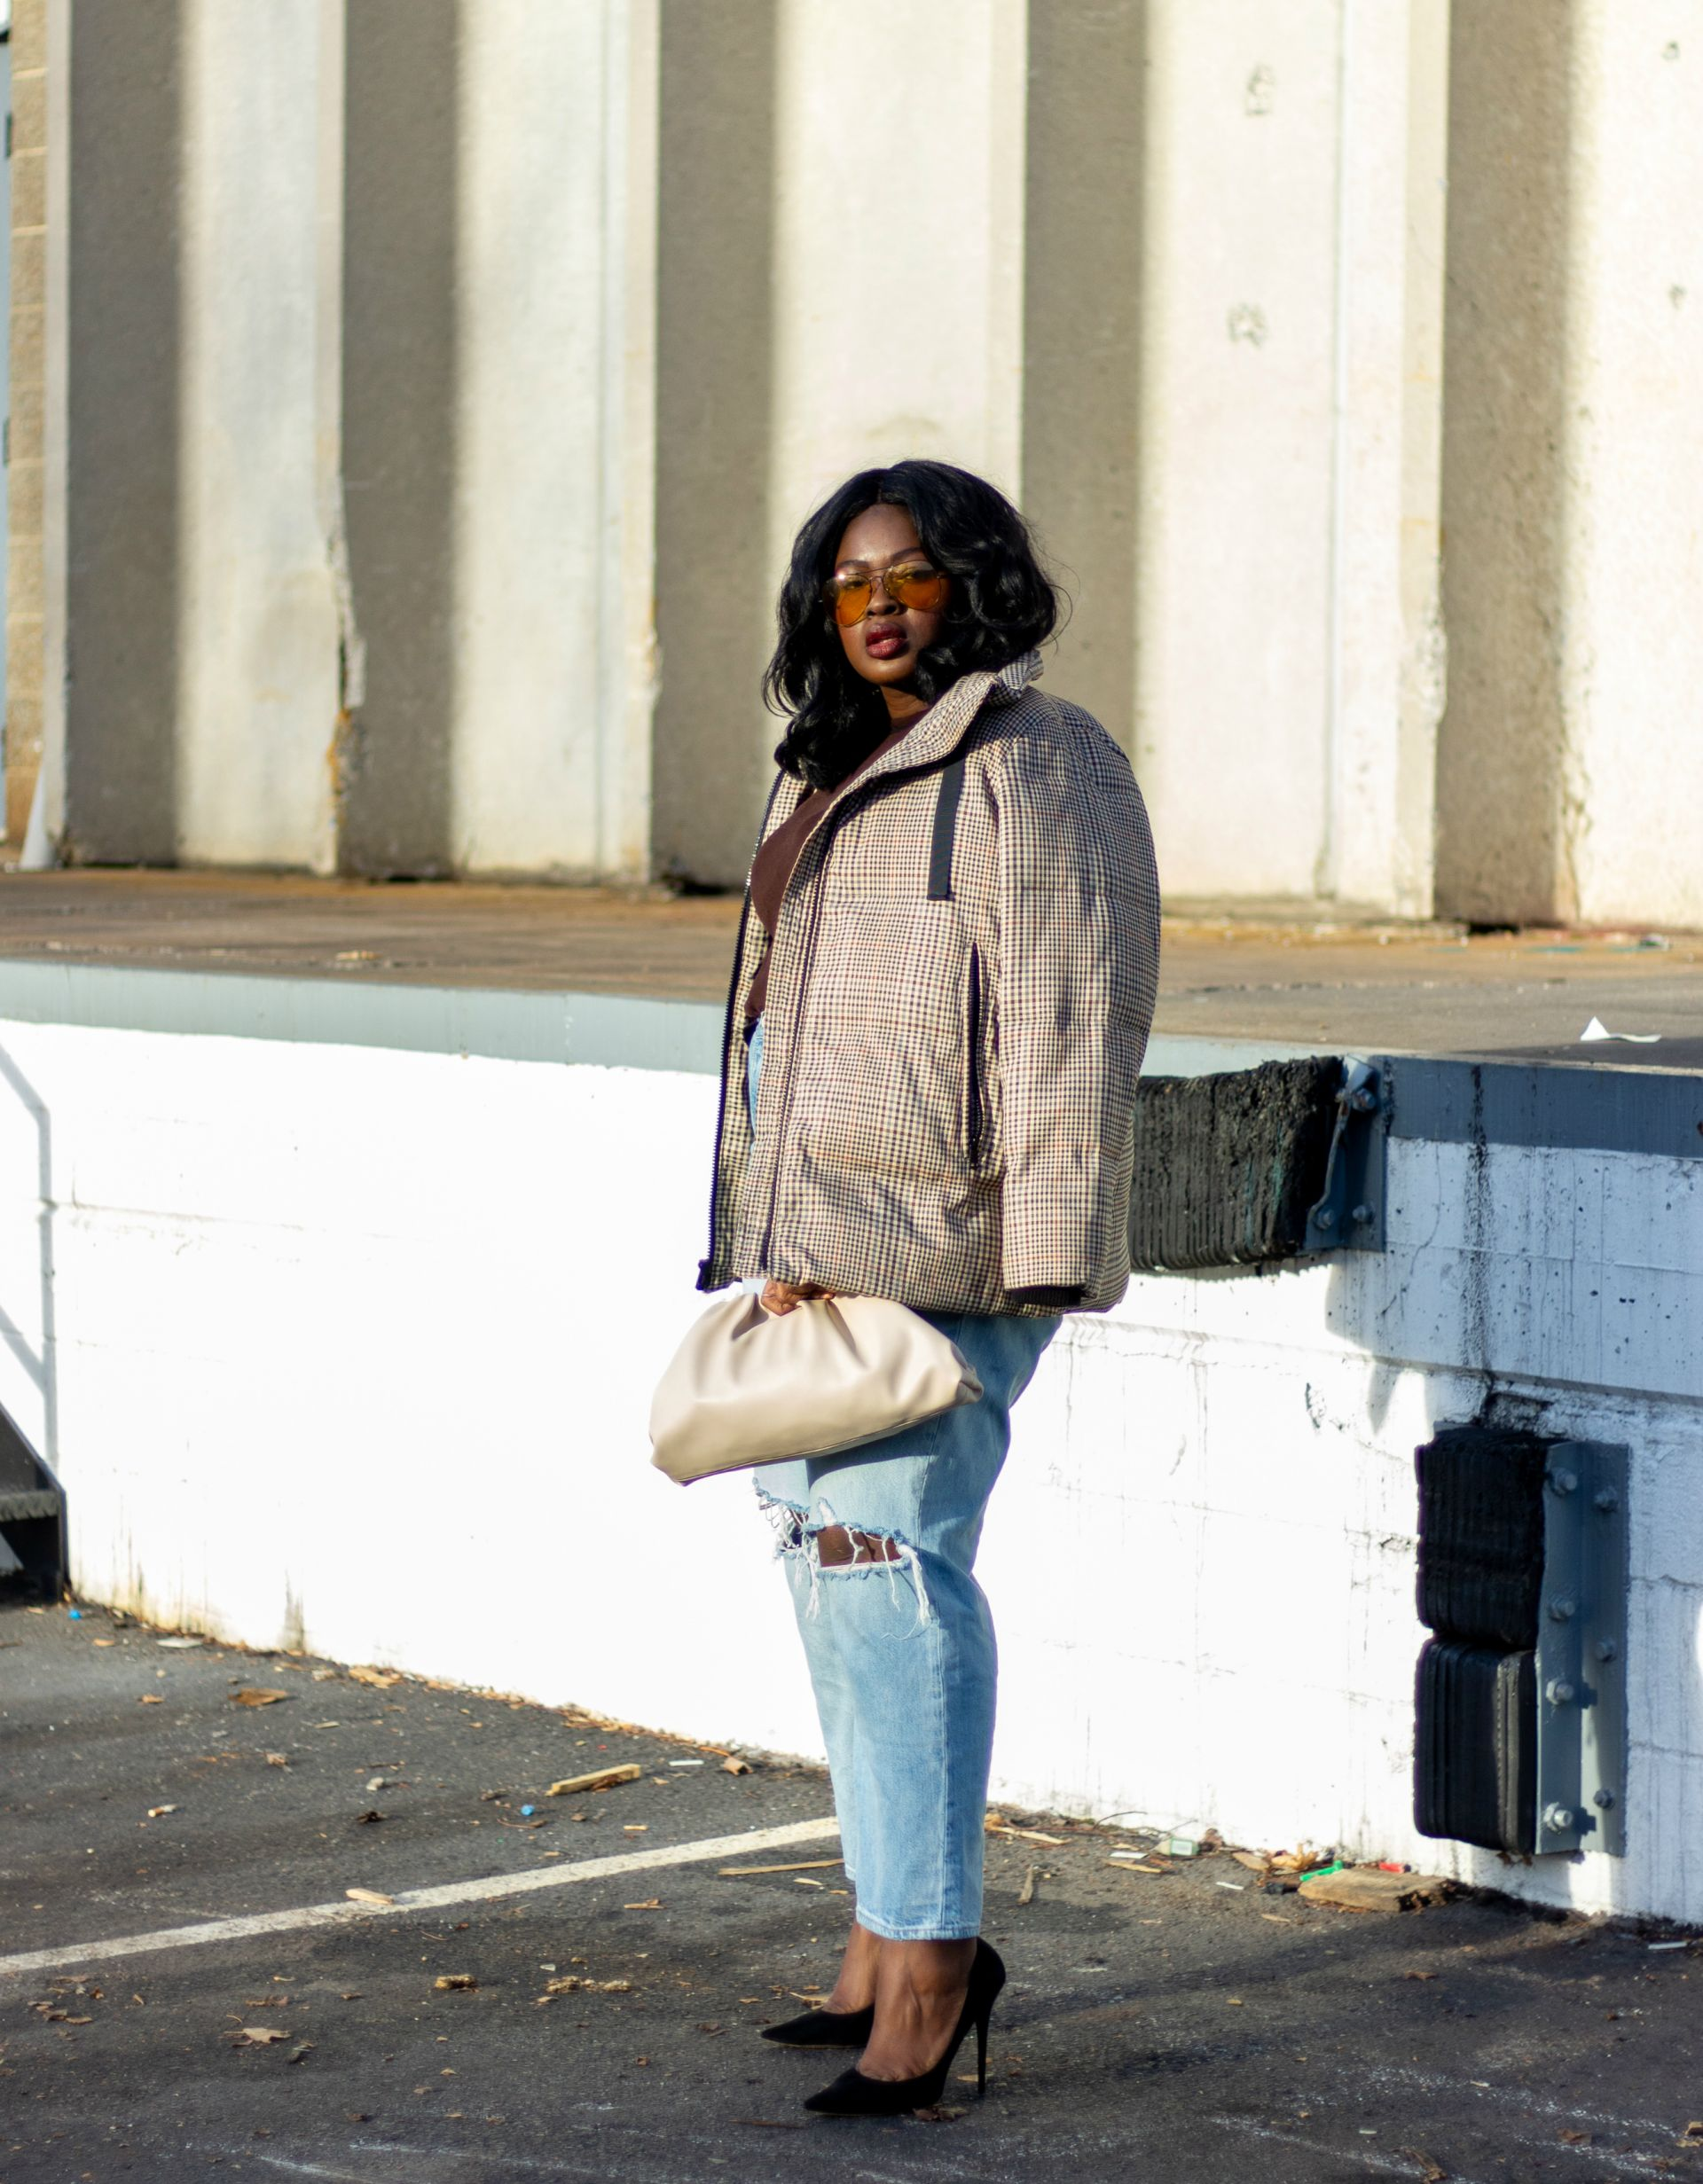 straight leg jean and puffer coat outfit - Ultimate After christmas Sale Roundup 2019 from supplechic a fashion and lifestyle blog based in baltimore